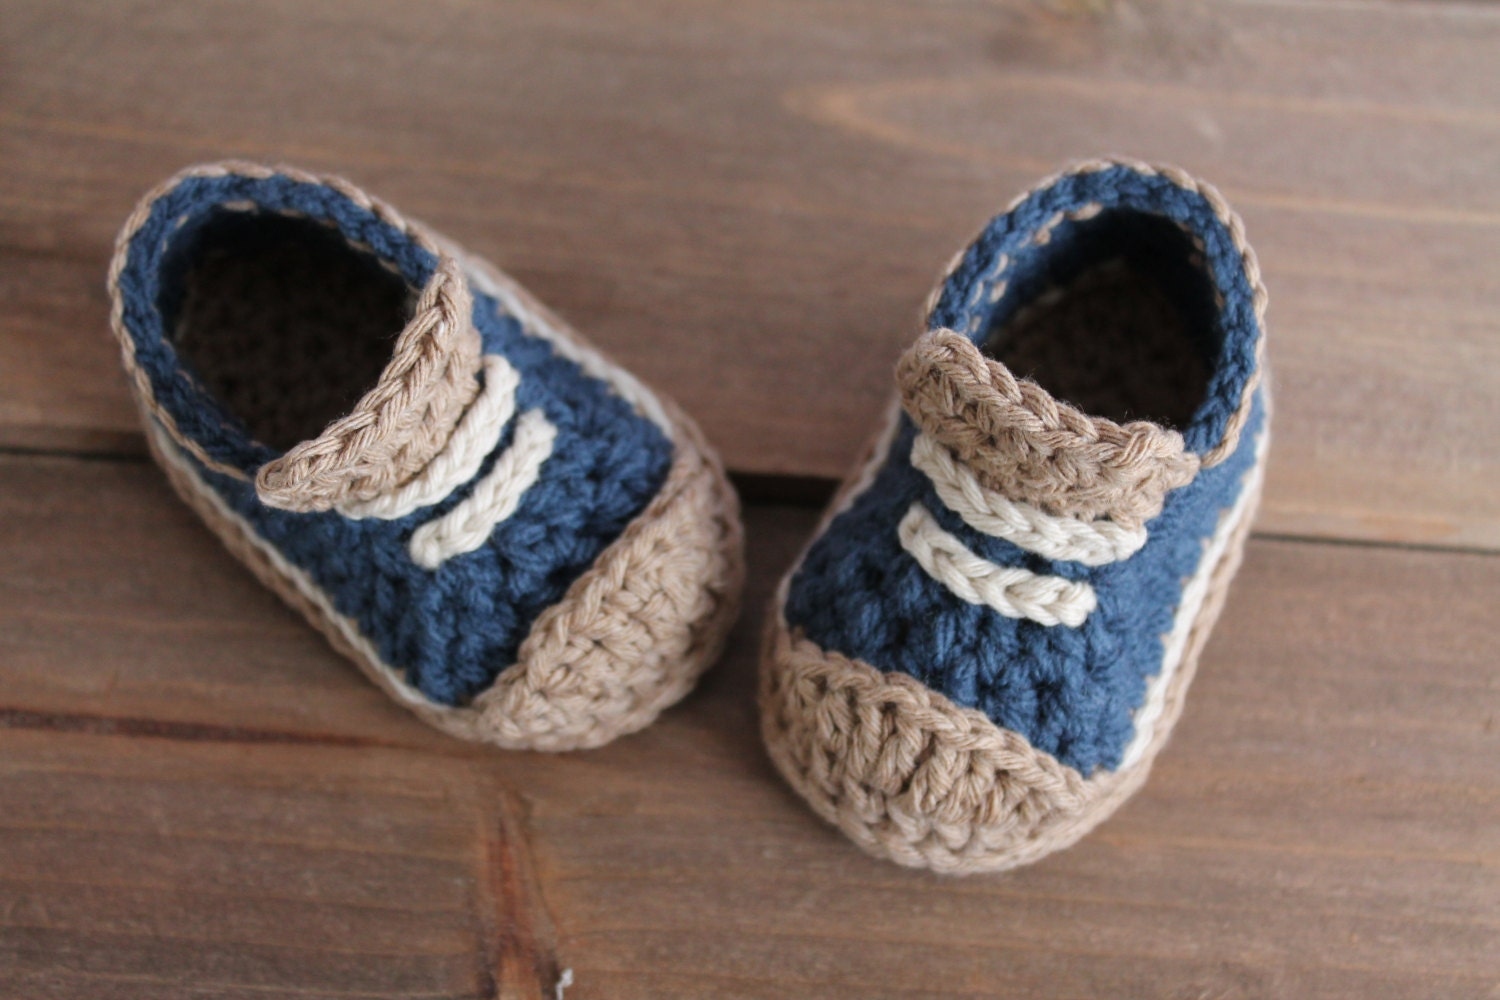 Cute crochet pattern for boys booties crete sneaker modern cute crochet pattern for boys booties crete sneaker modern pattern low top sneaker blue crochet baby shoes pattern only bankloansurffo Choice Image